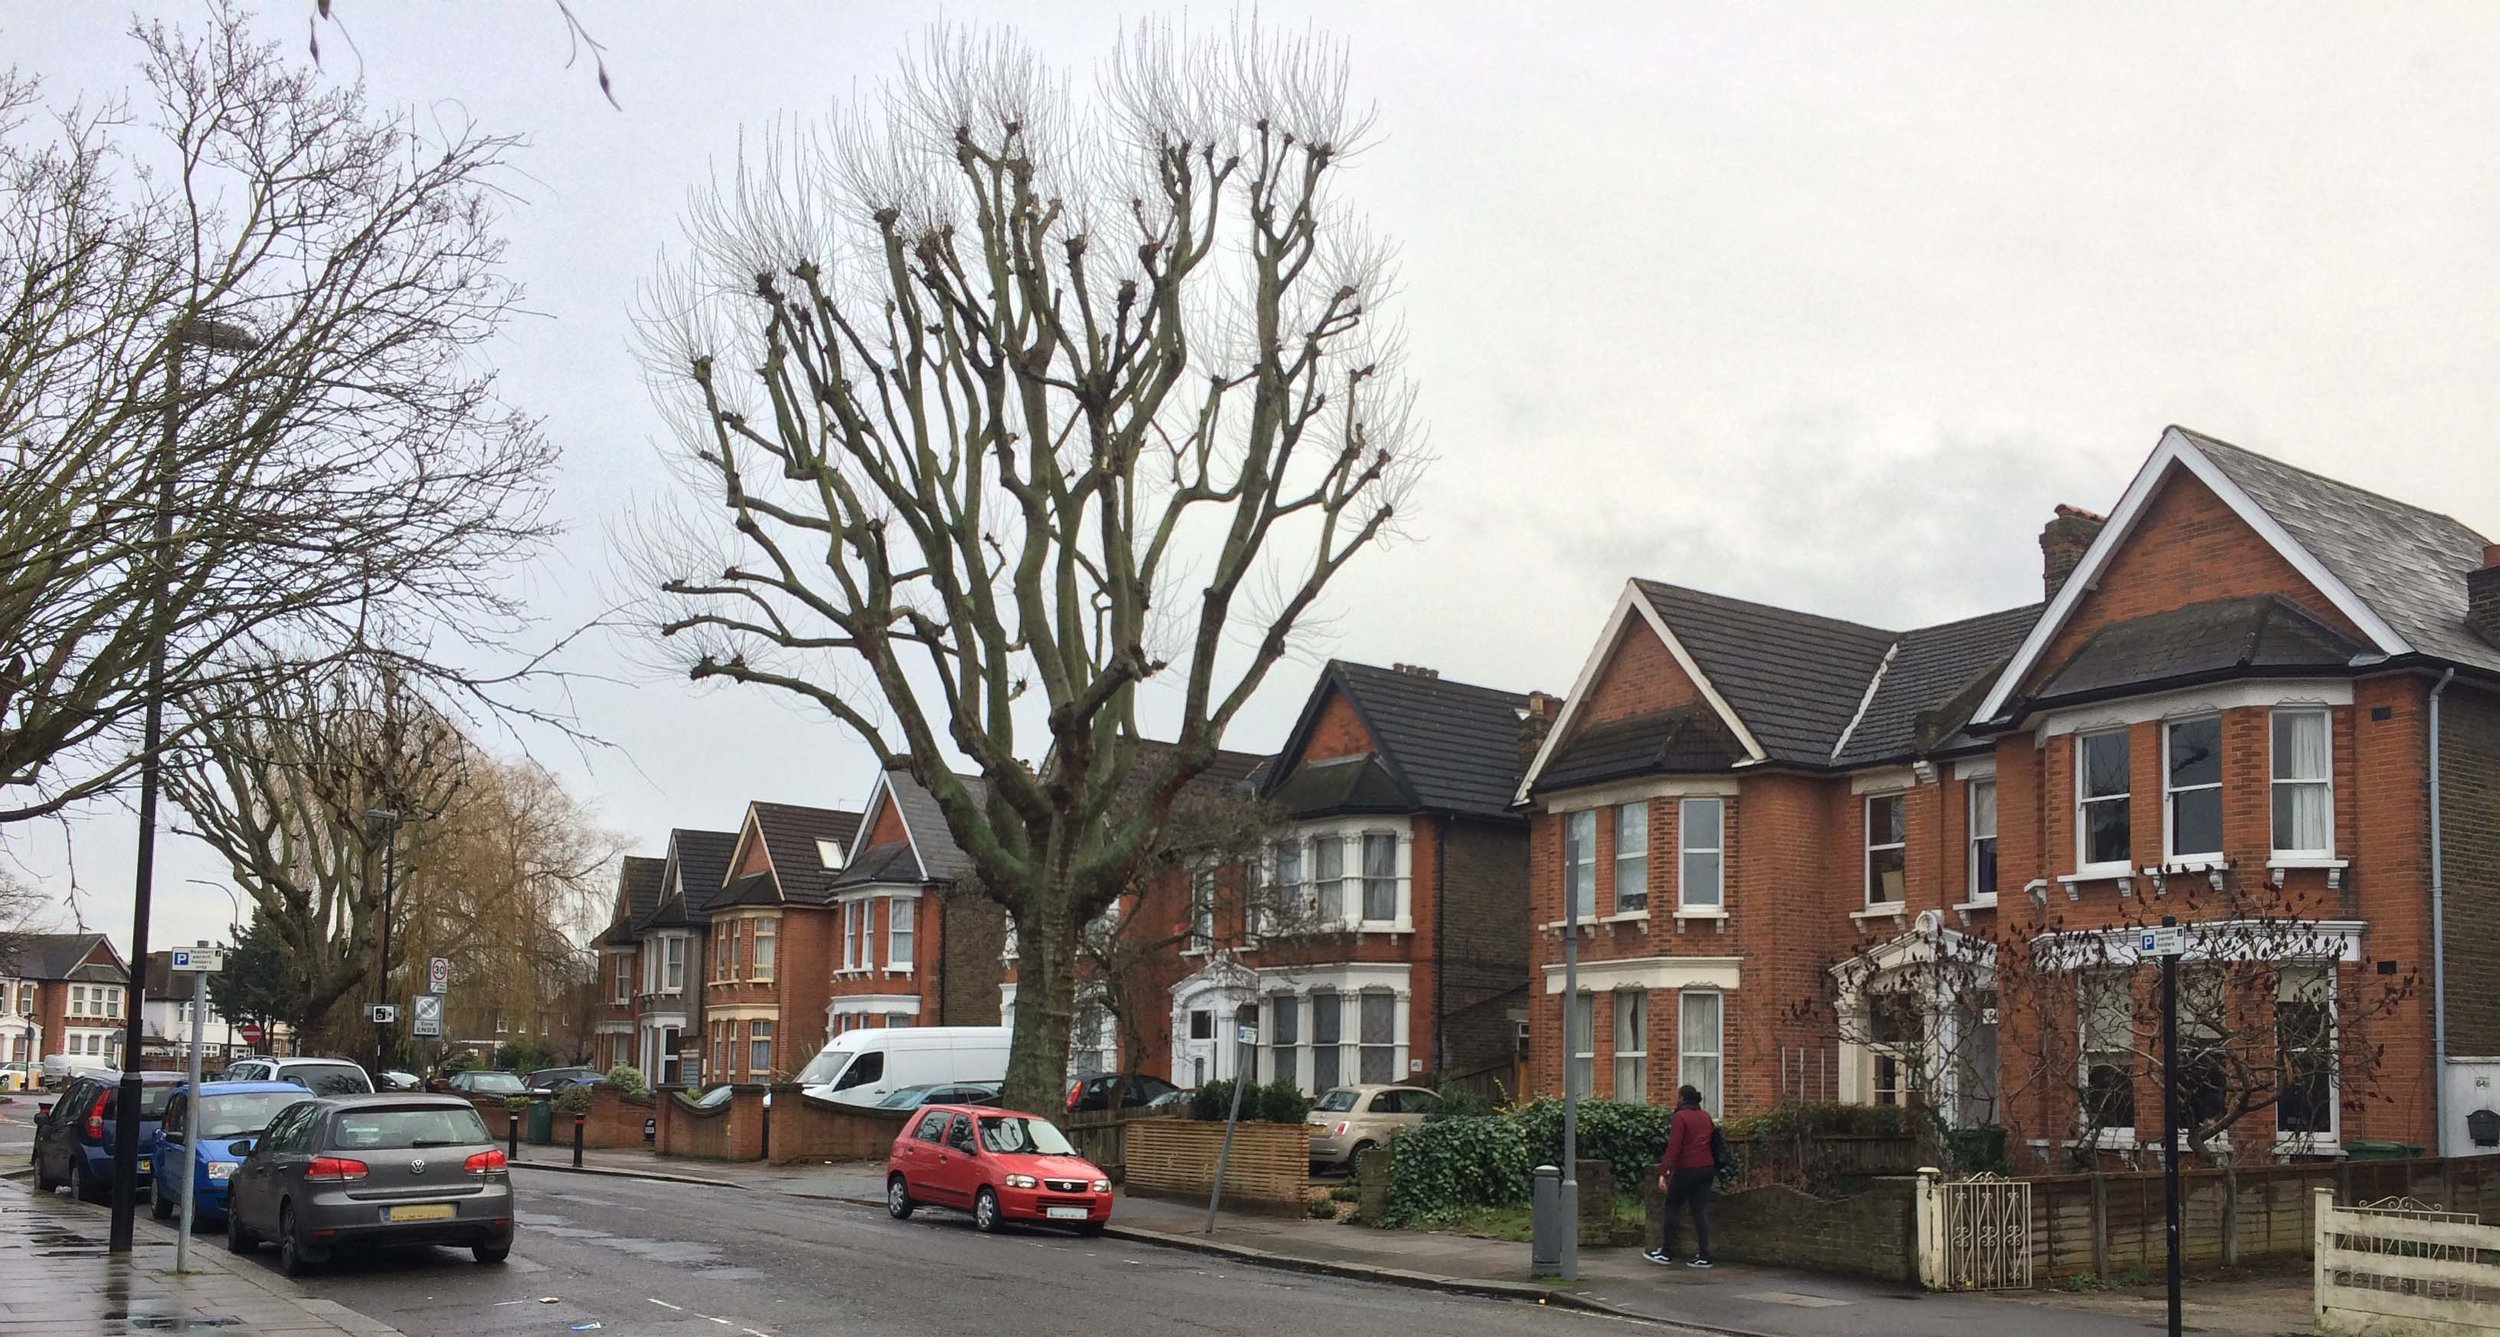 Edwardian bay-fronted properties, Culverley Green Conservation Area, Catford, LB Lewisham